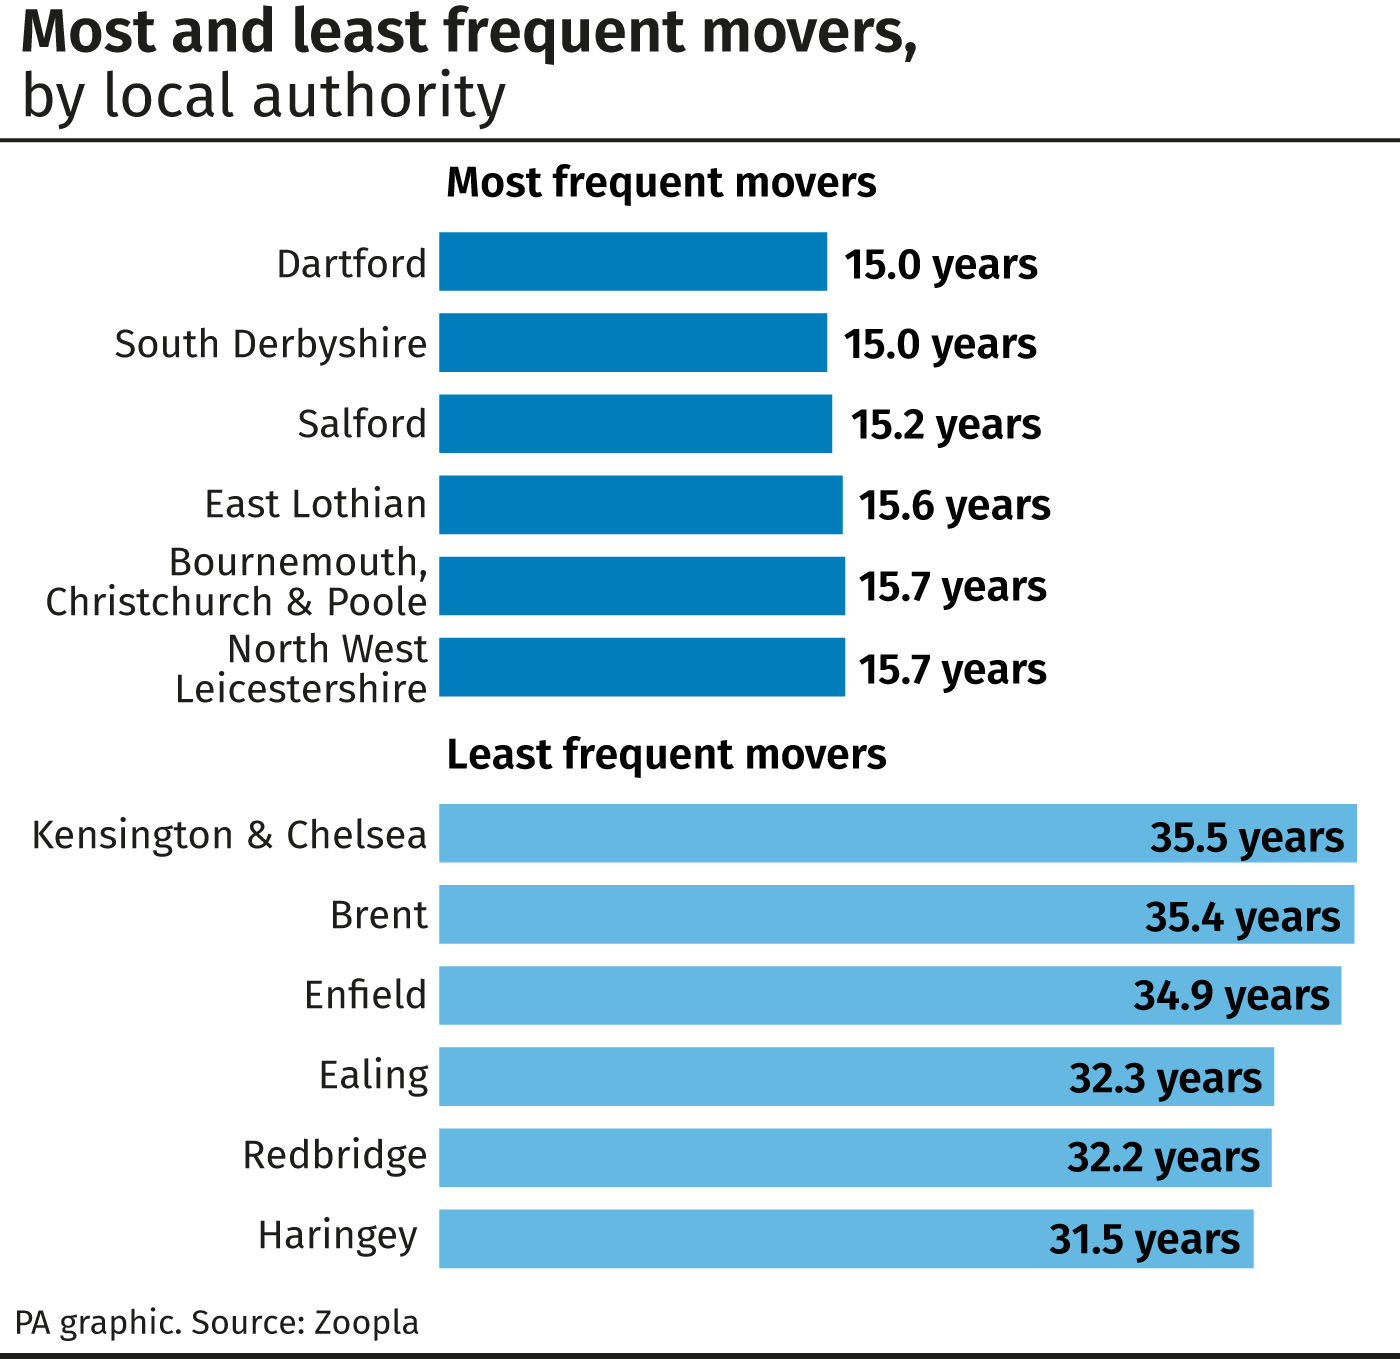 Most and least frequent movers, by local authority